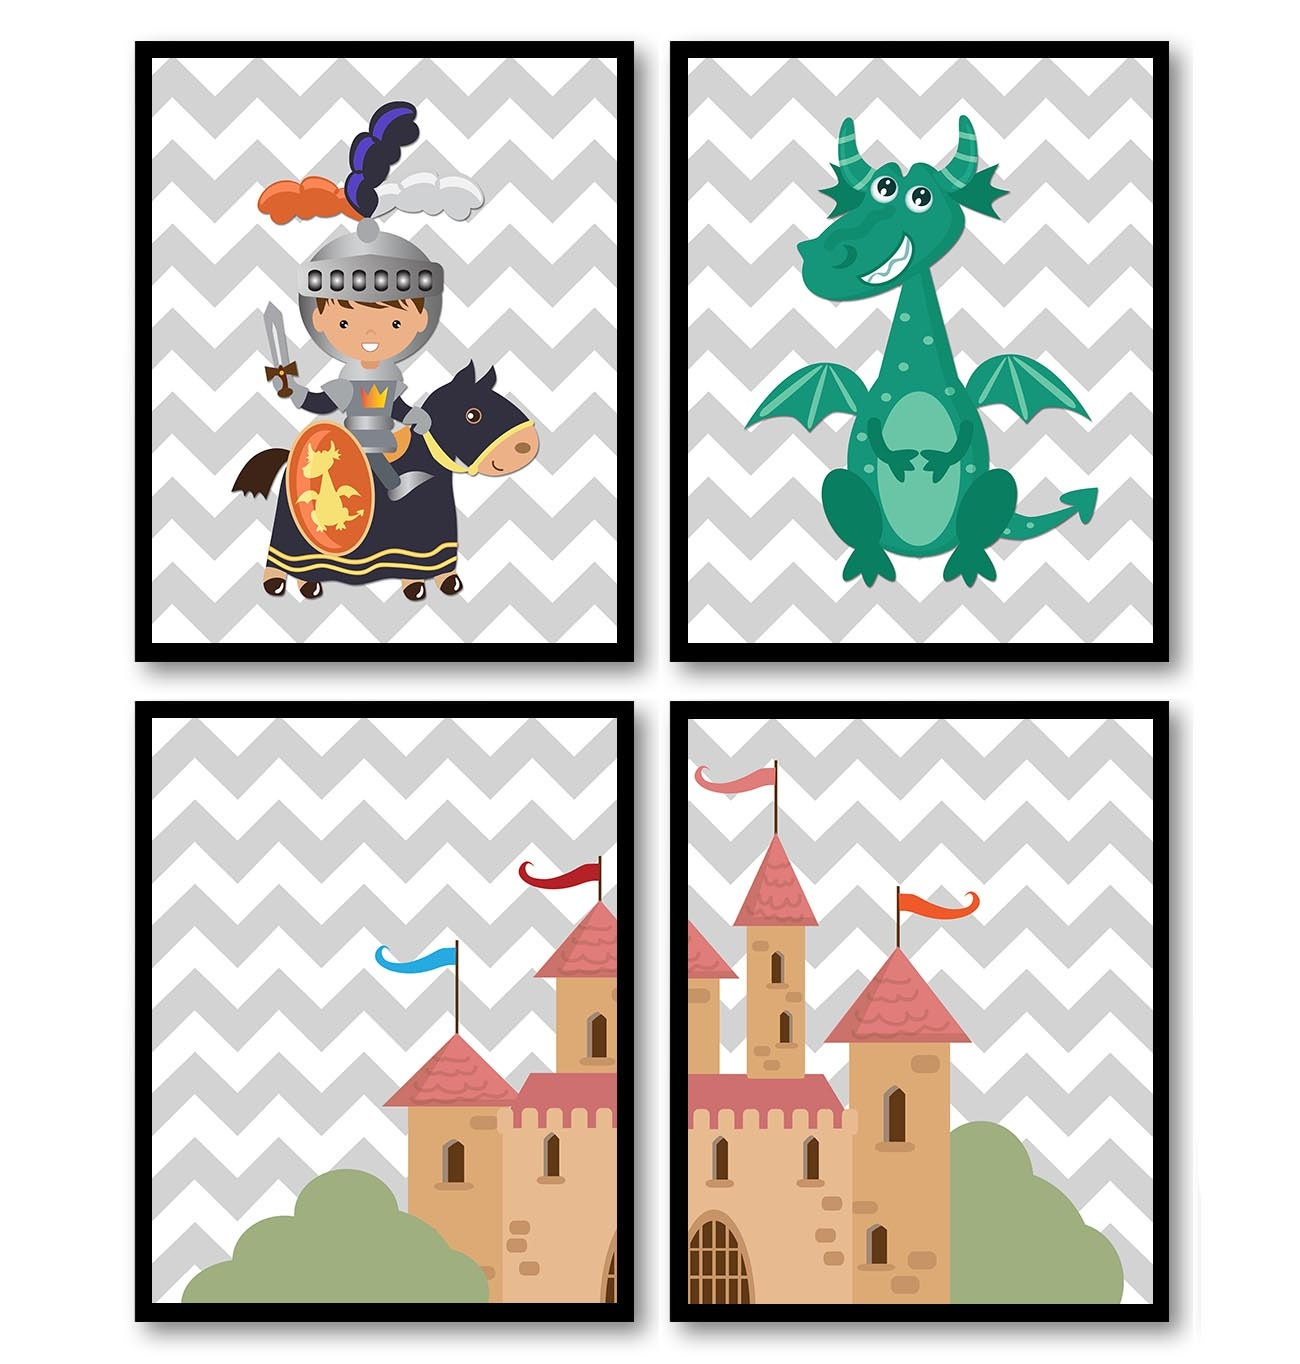 Fairy Tale Nursery Art Child Baby Set of 4 Art Prints Grey Chevron Navy Blue Orange Teal Boy Knight